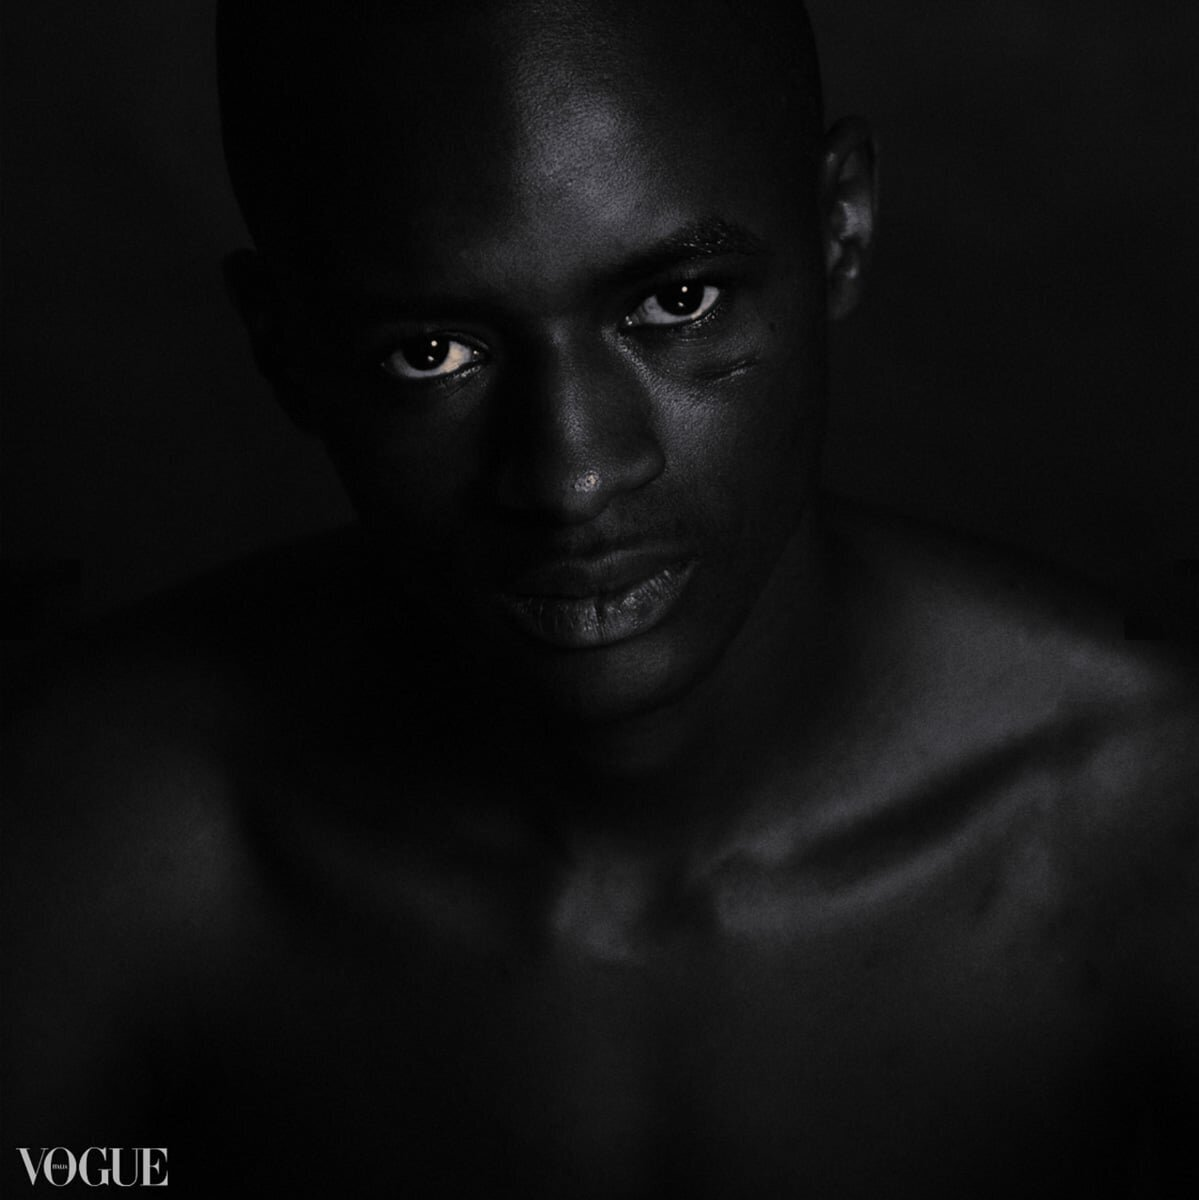 vogue-portrait-photographer-boston-photo-21